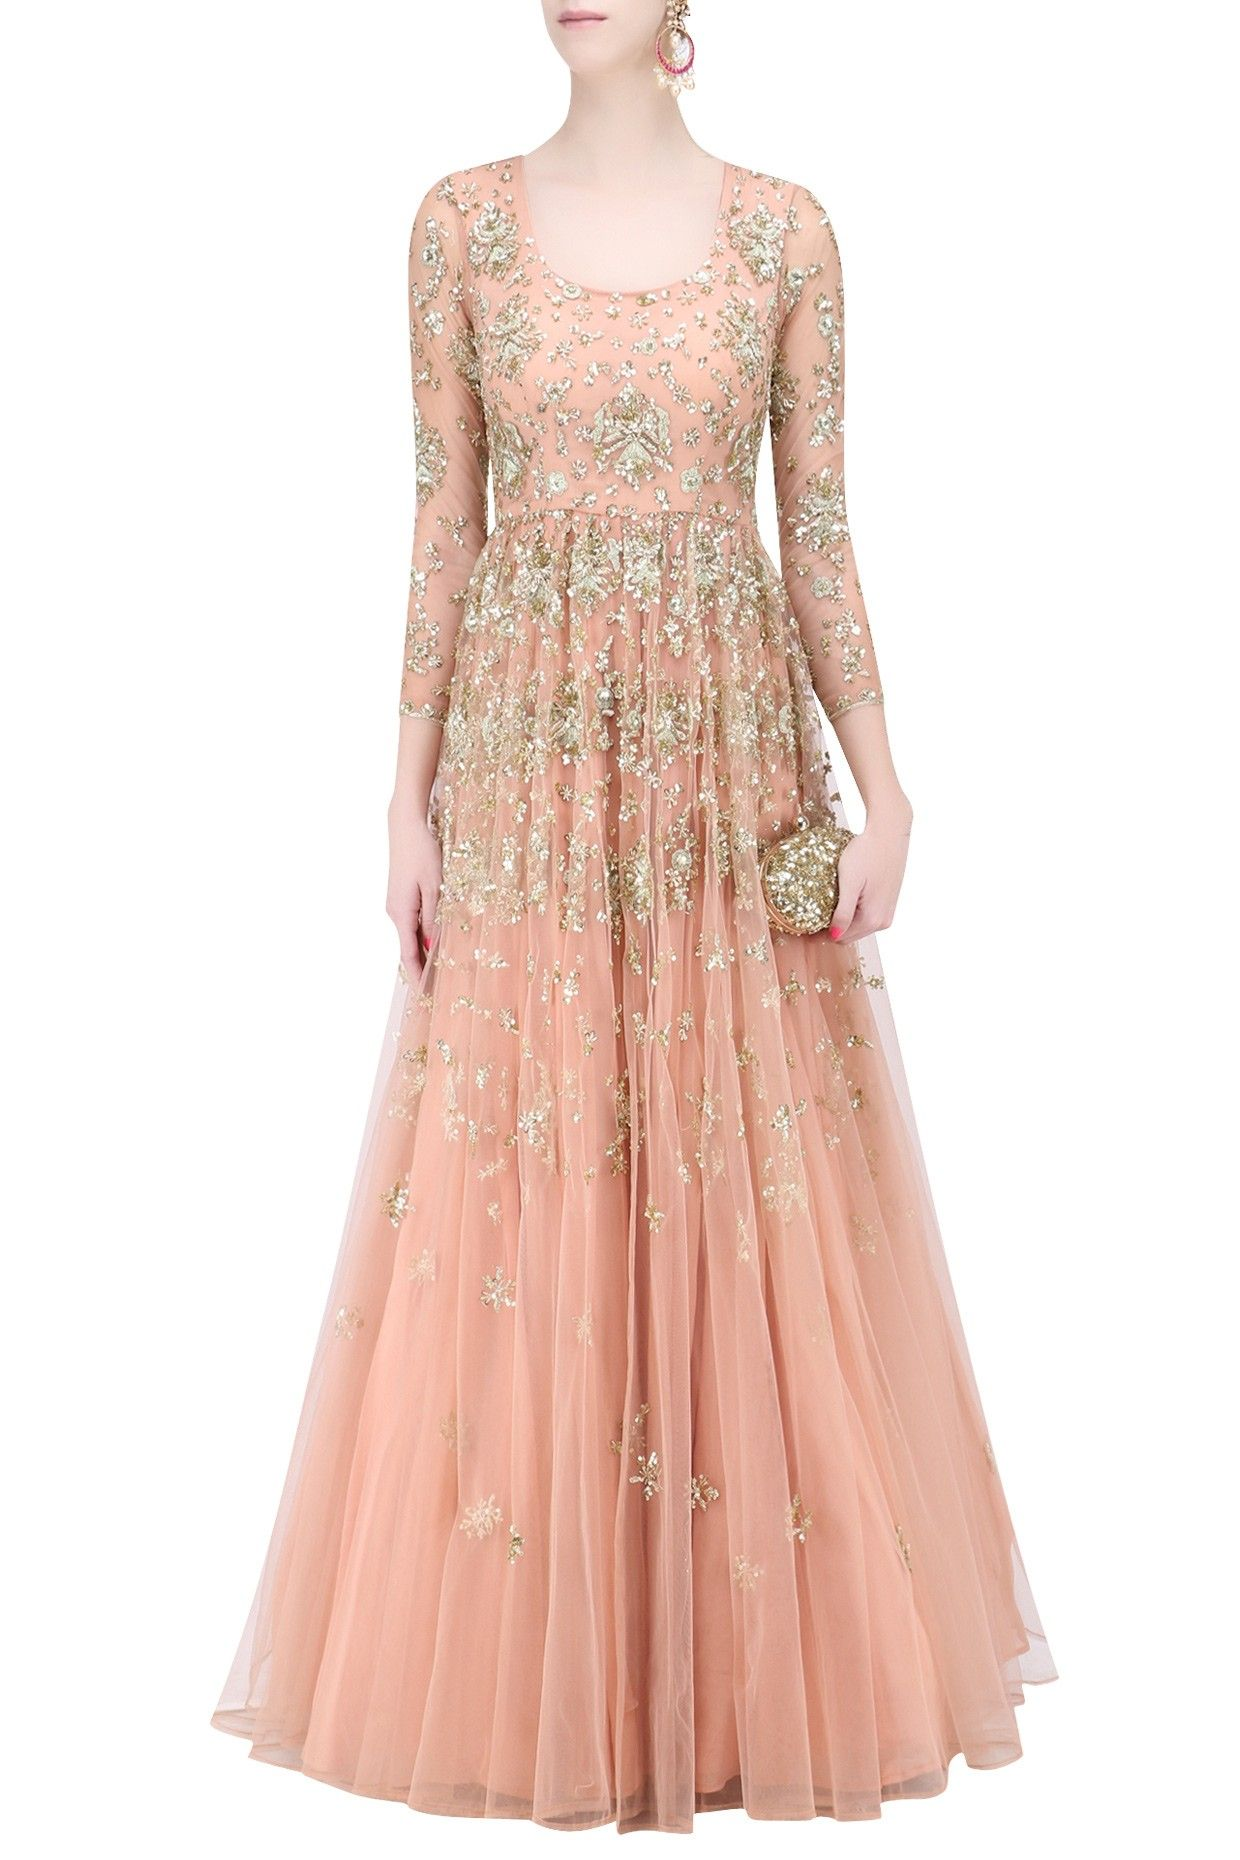 f61040b74d Description Featuring a peach flared anarkali gown in net with gold sequins  floral work all over. It has a can can underlayer.